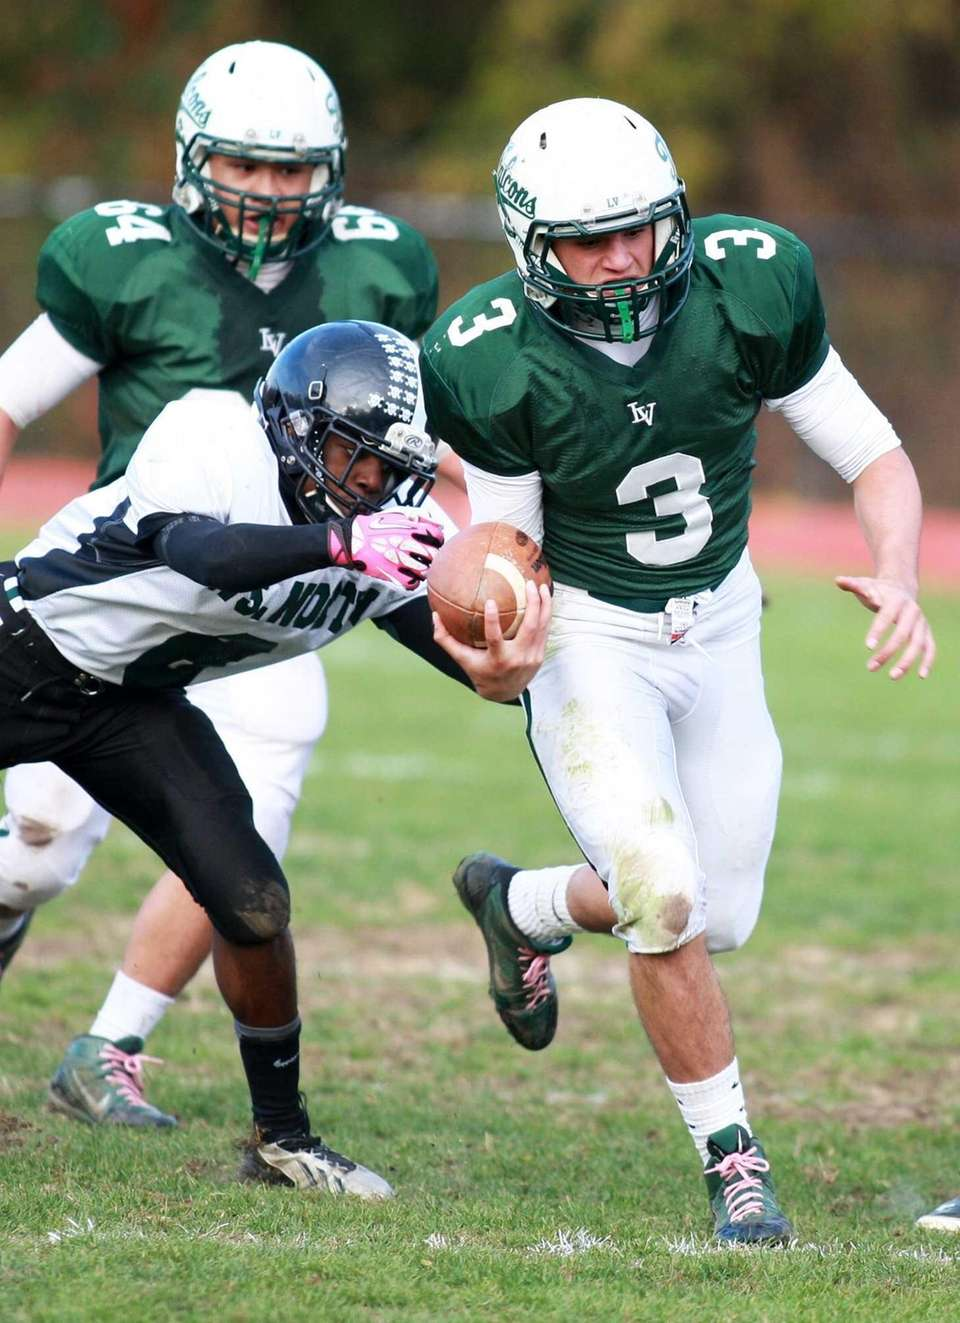 Locust Valley quarterback Jordan Formicola (no. 3) tries